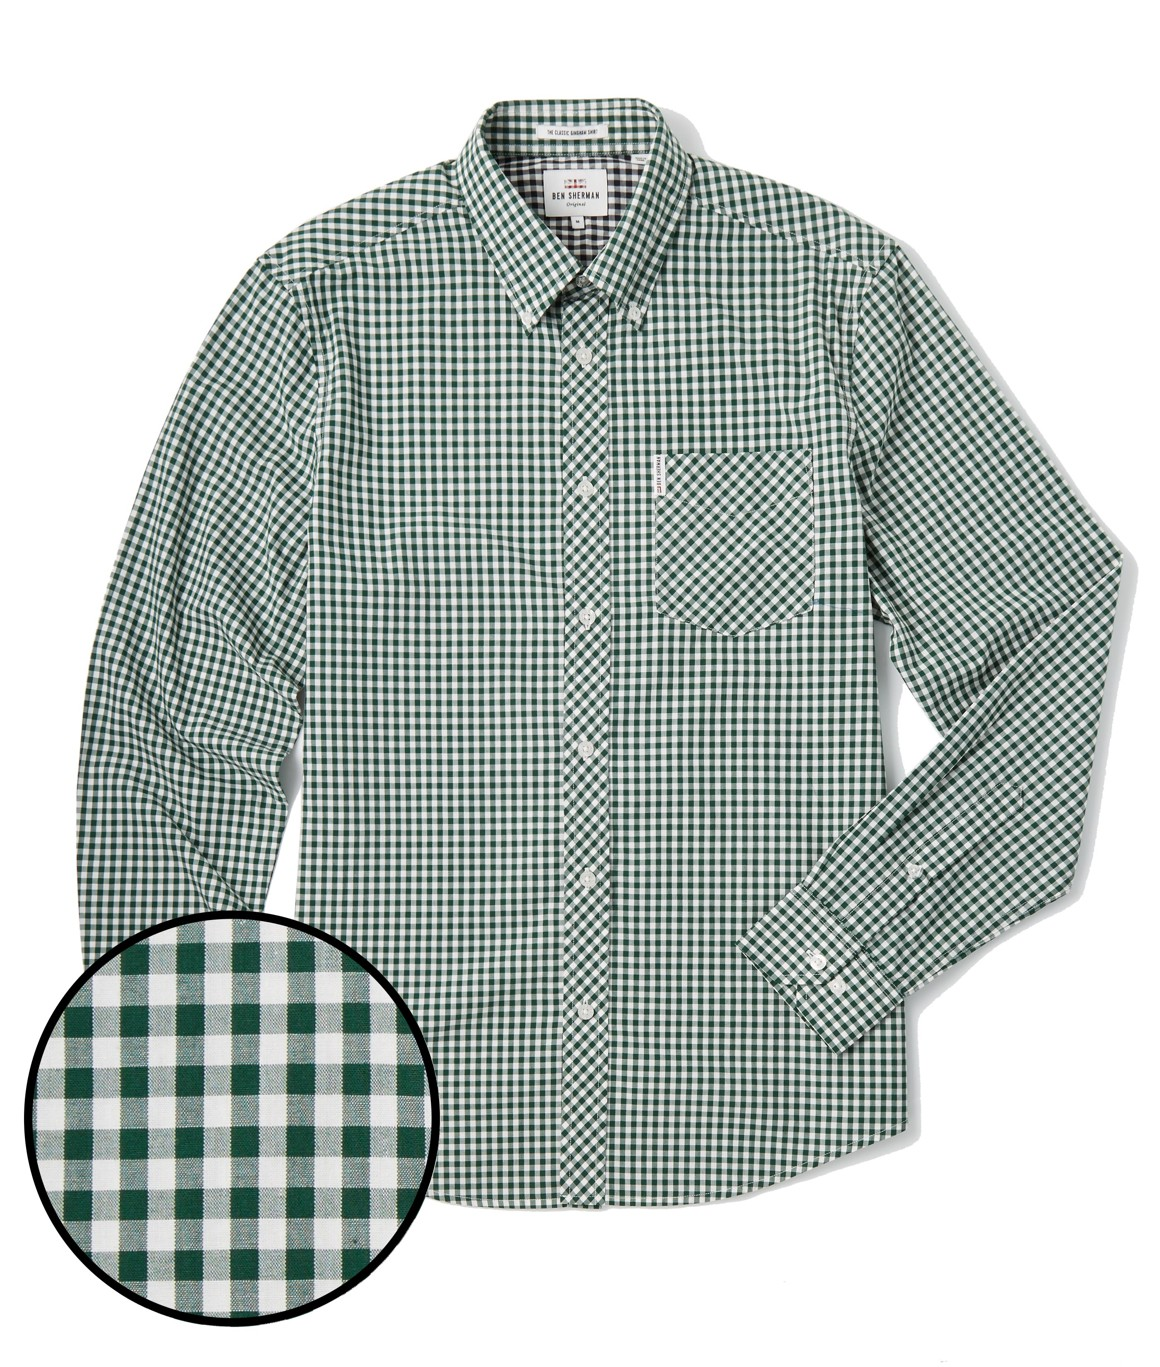 Ben Sherman, CLASSIC GINGHAM MOD FIT LS SHIRT, Forest Night, Number 1